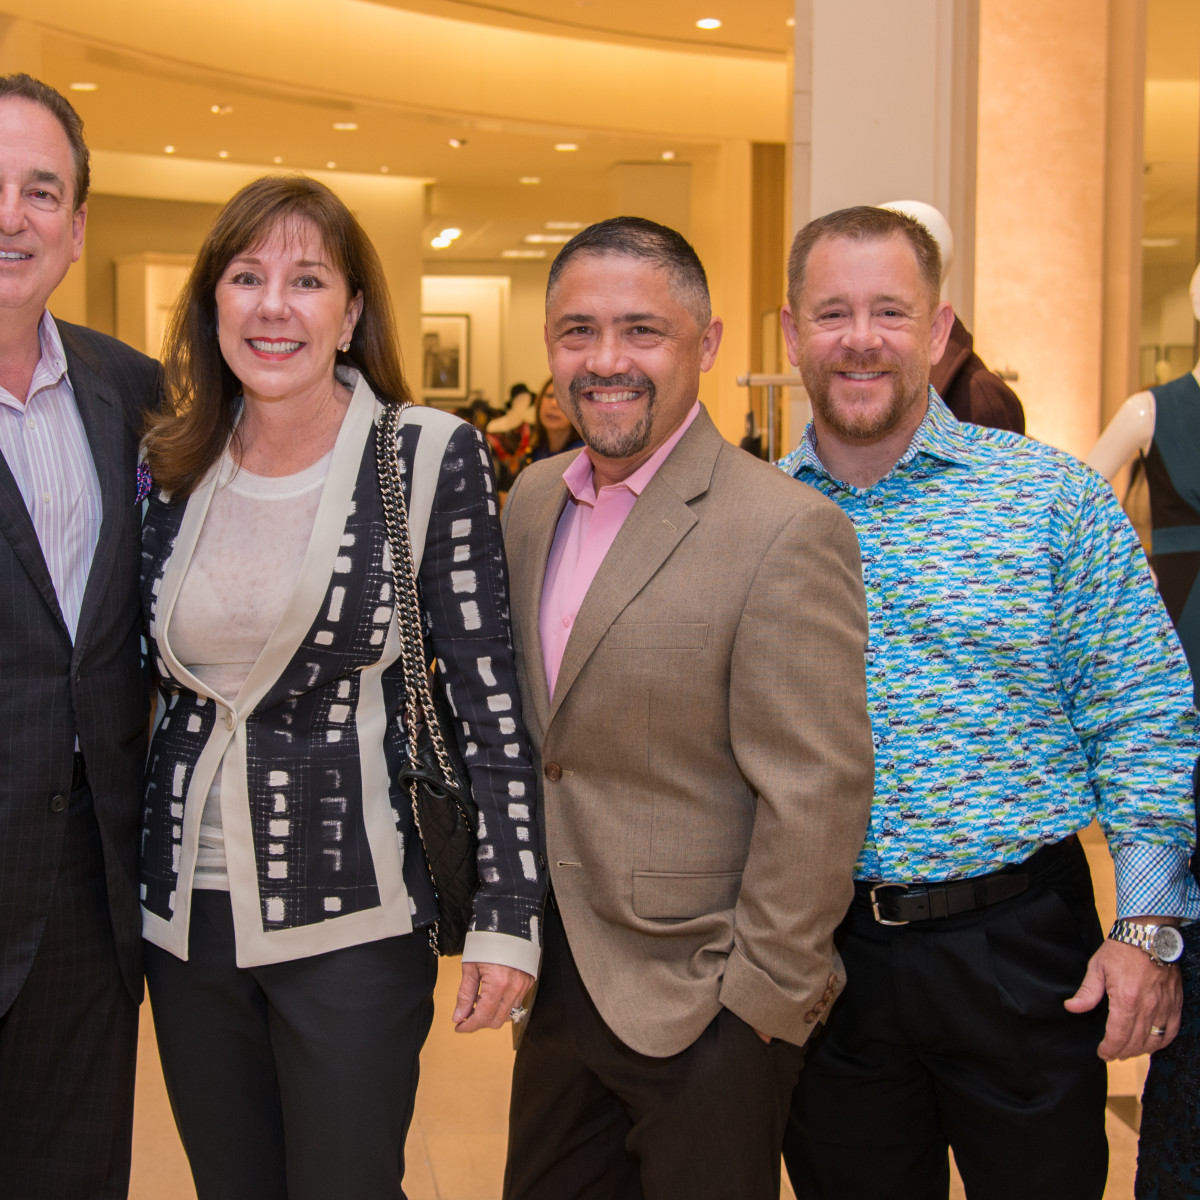 News, Shelby, Women of Distinction announcement, Oct. 2015, Alan Stein, elizabeth Stein, Shelby Kibodeaux, Bruce Padilla